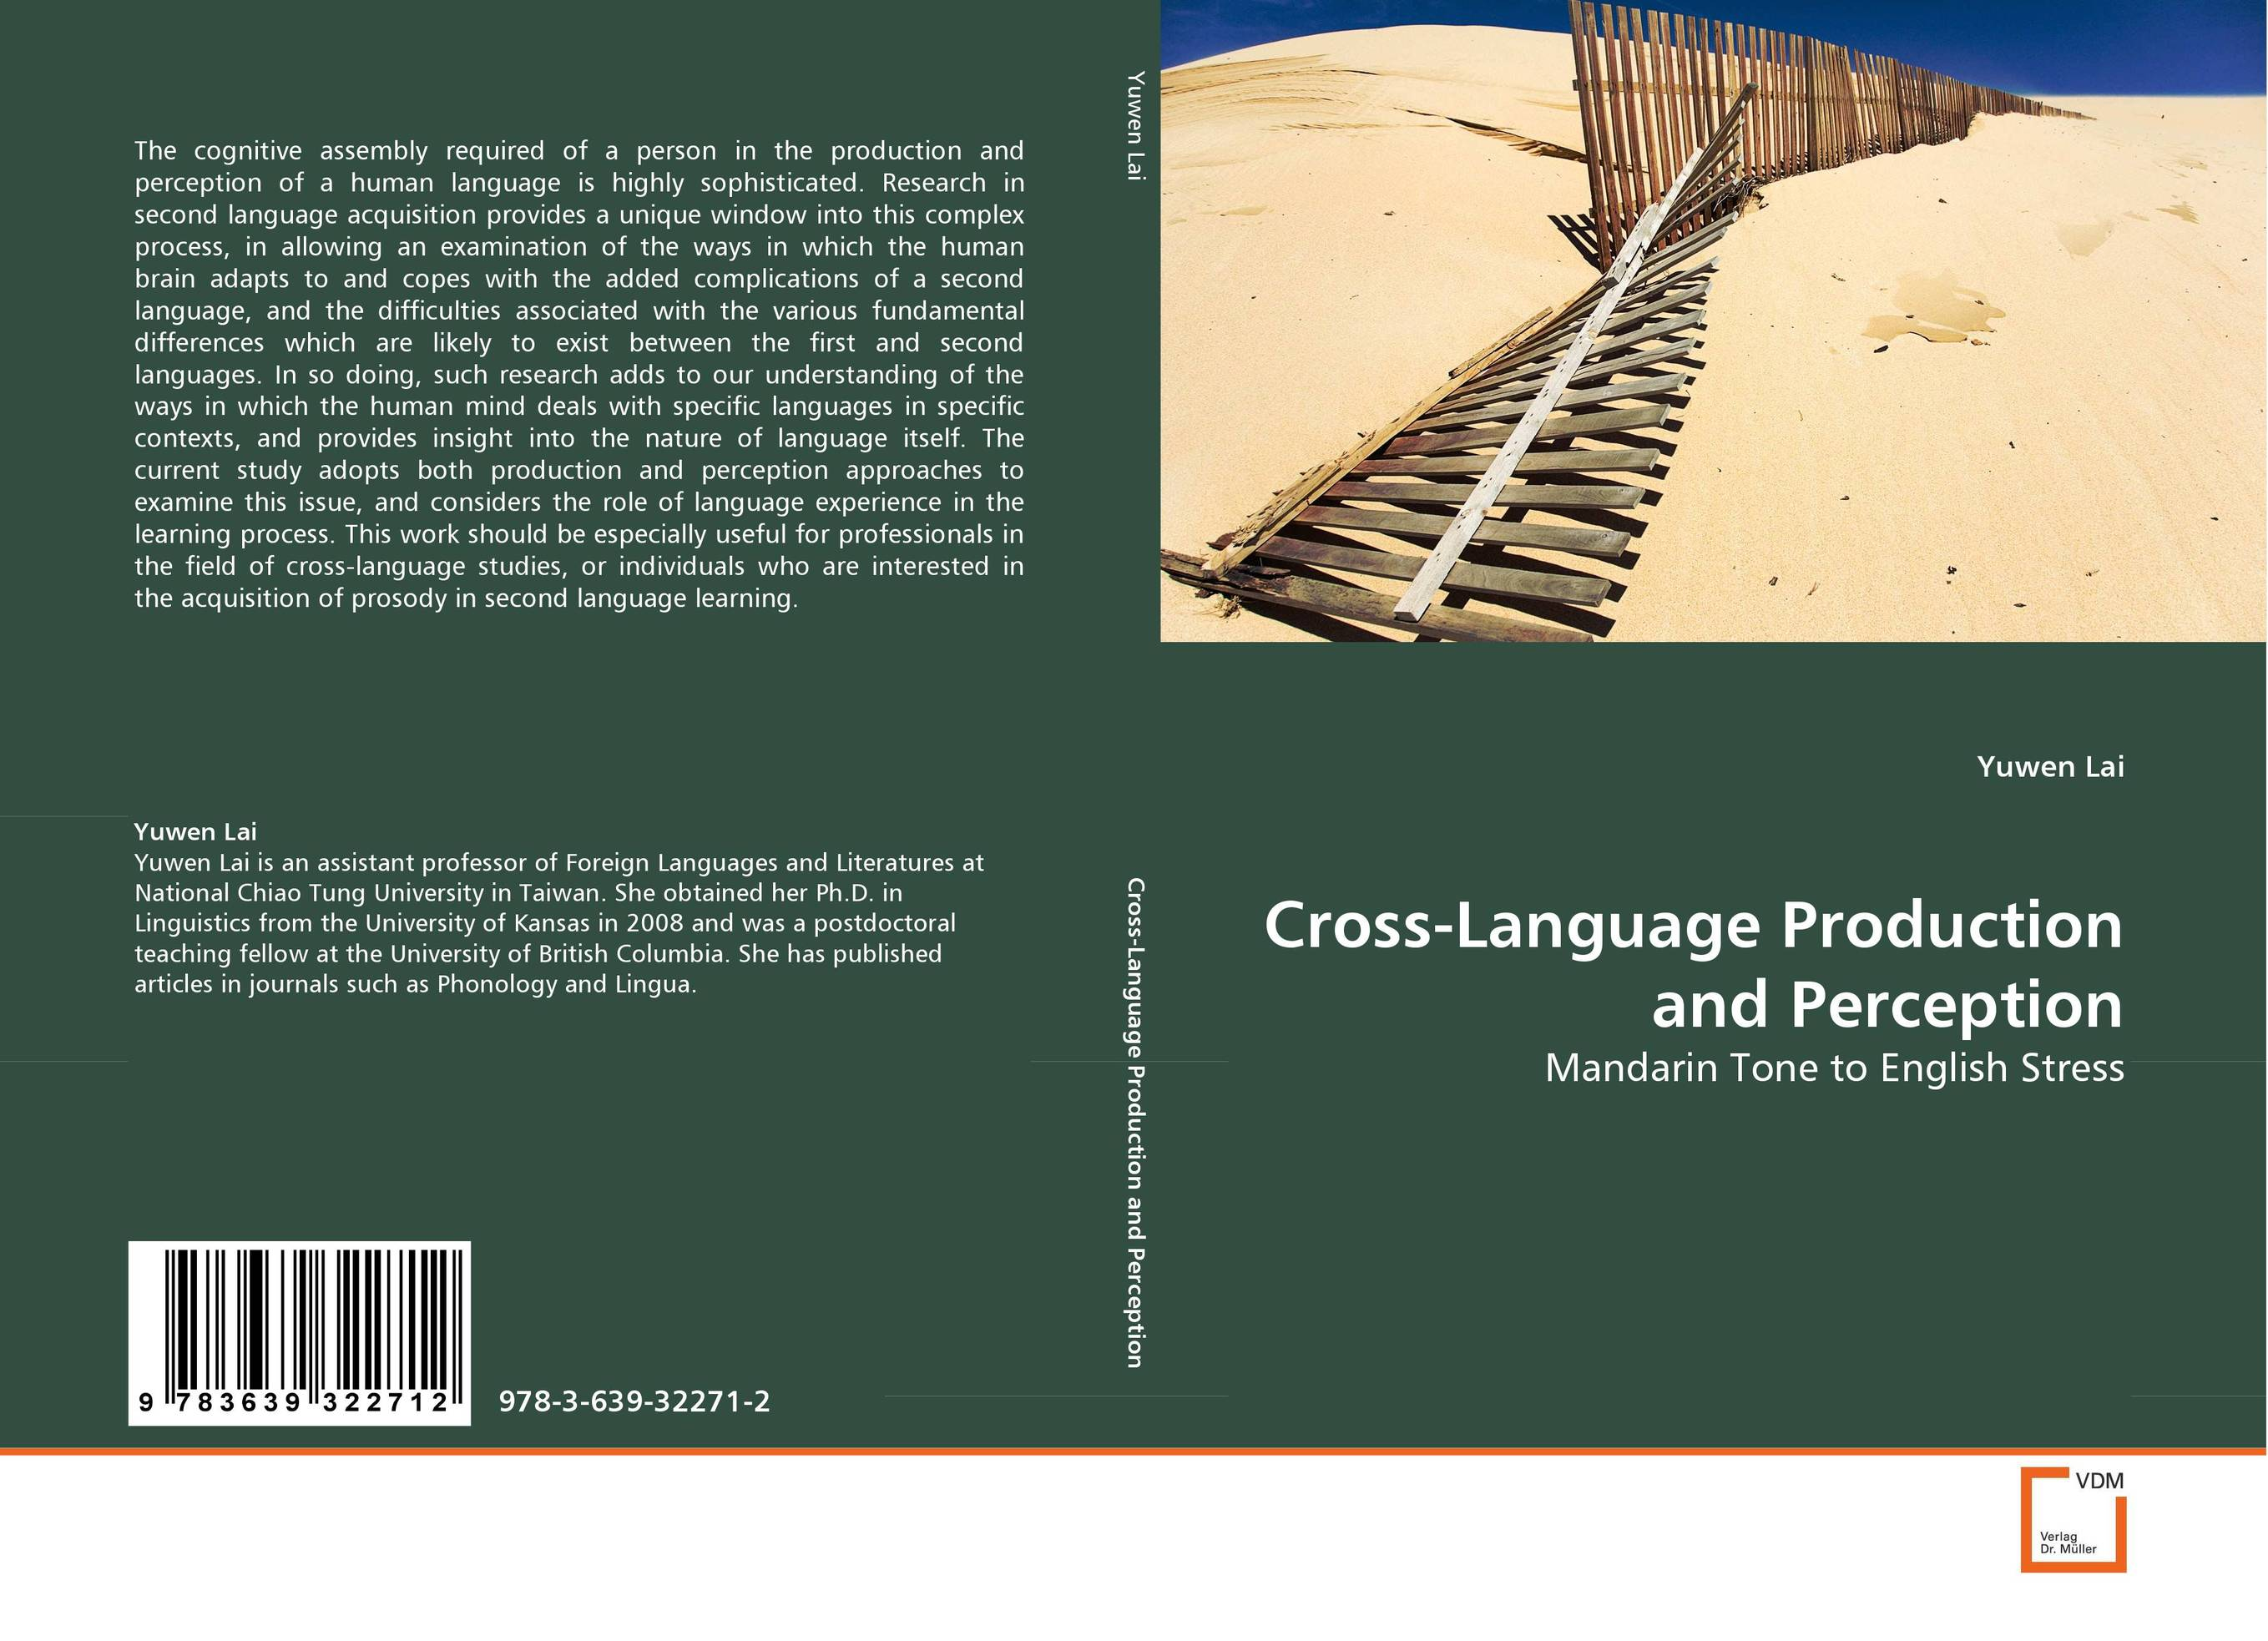 Cross-Language Production and Perception laurens j van mourik the process of cross border entrepreneurship